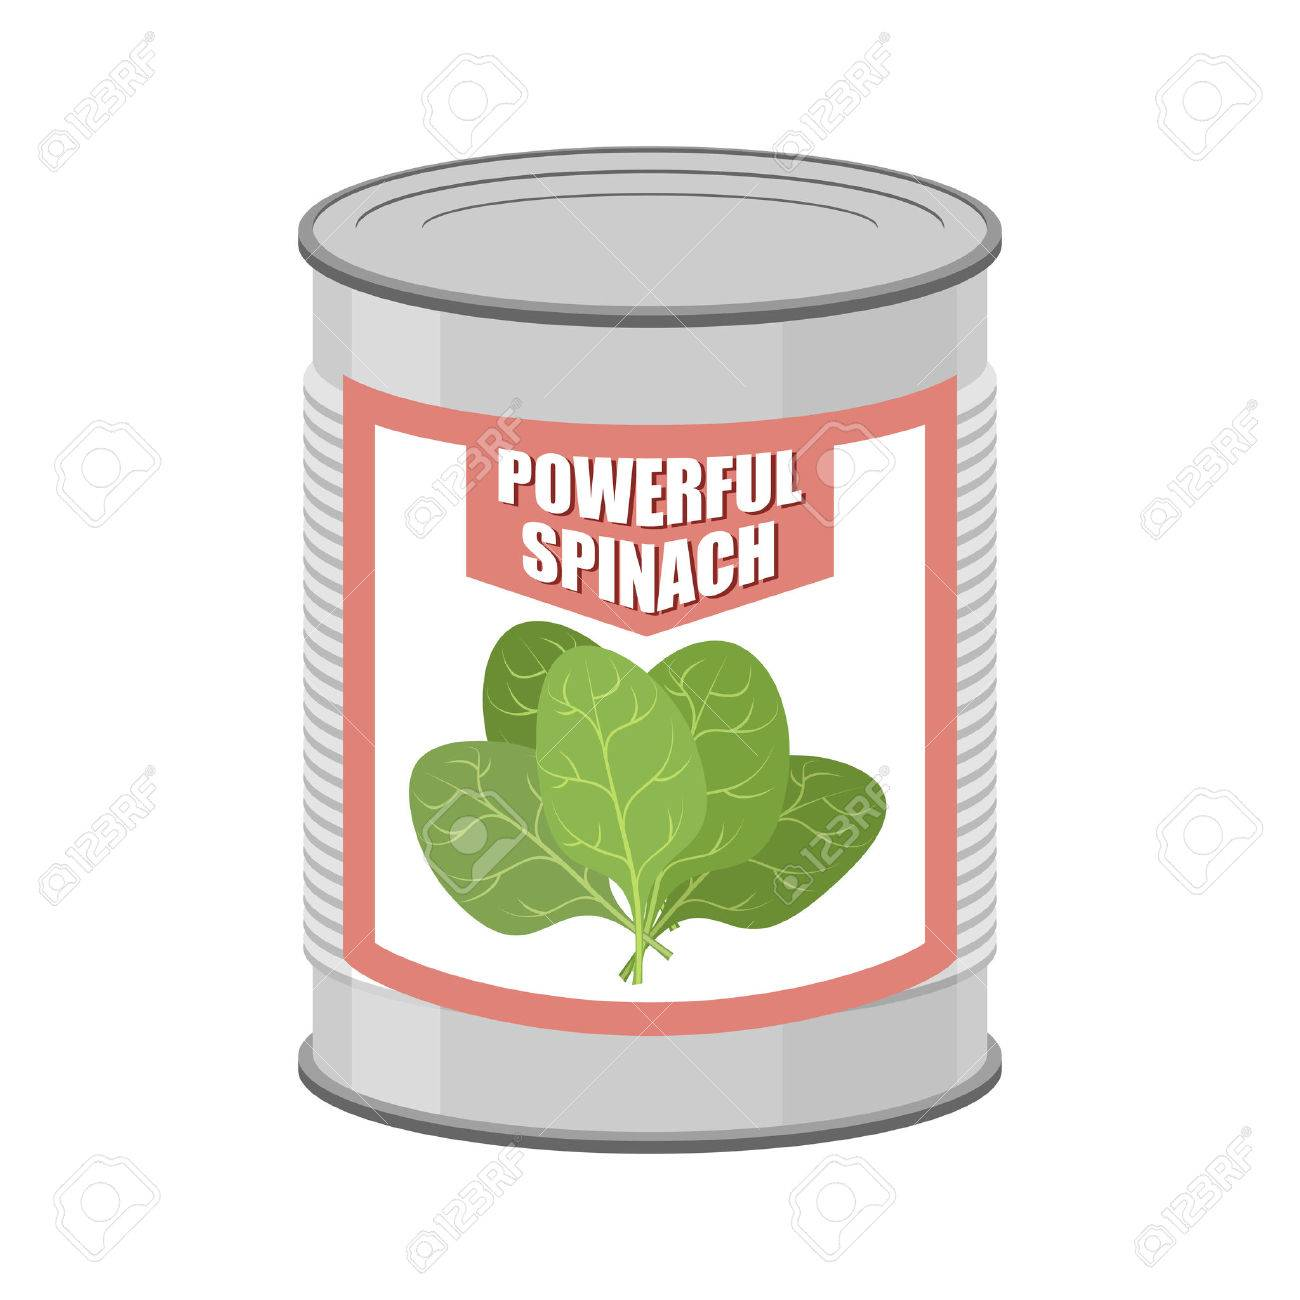 Powerful spinach. Canned spinach. Canning pot with lettuce leaves. Delicacy for vegetarians. Vector illustration - 44010130